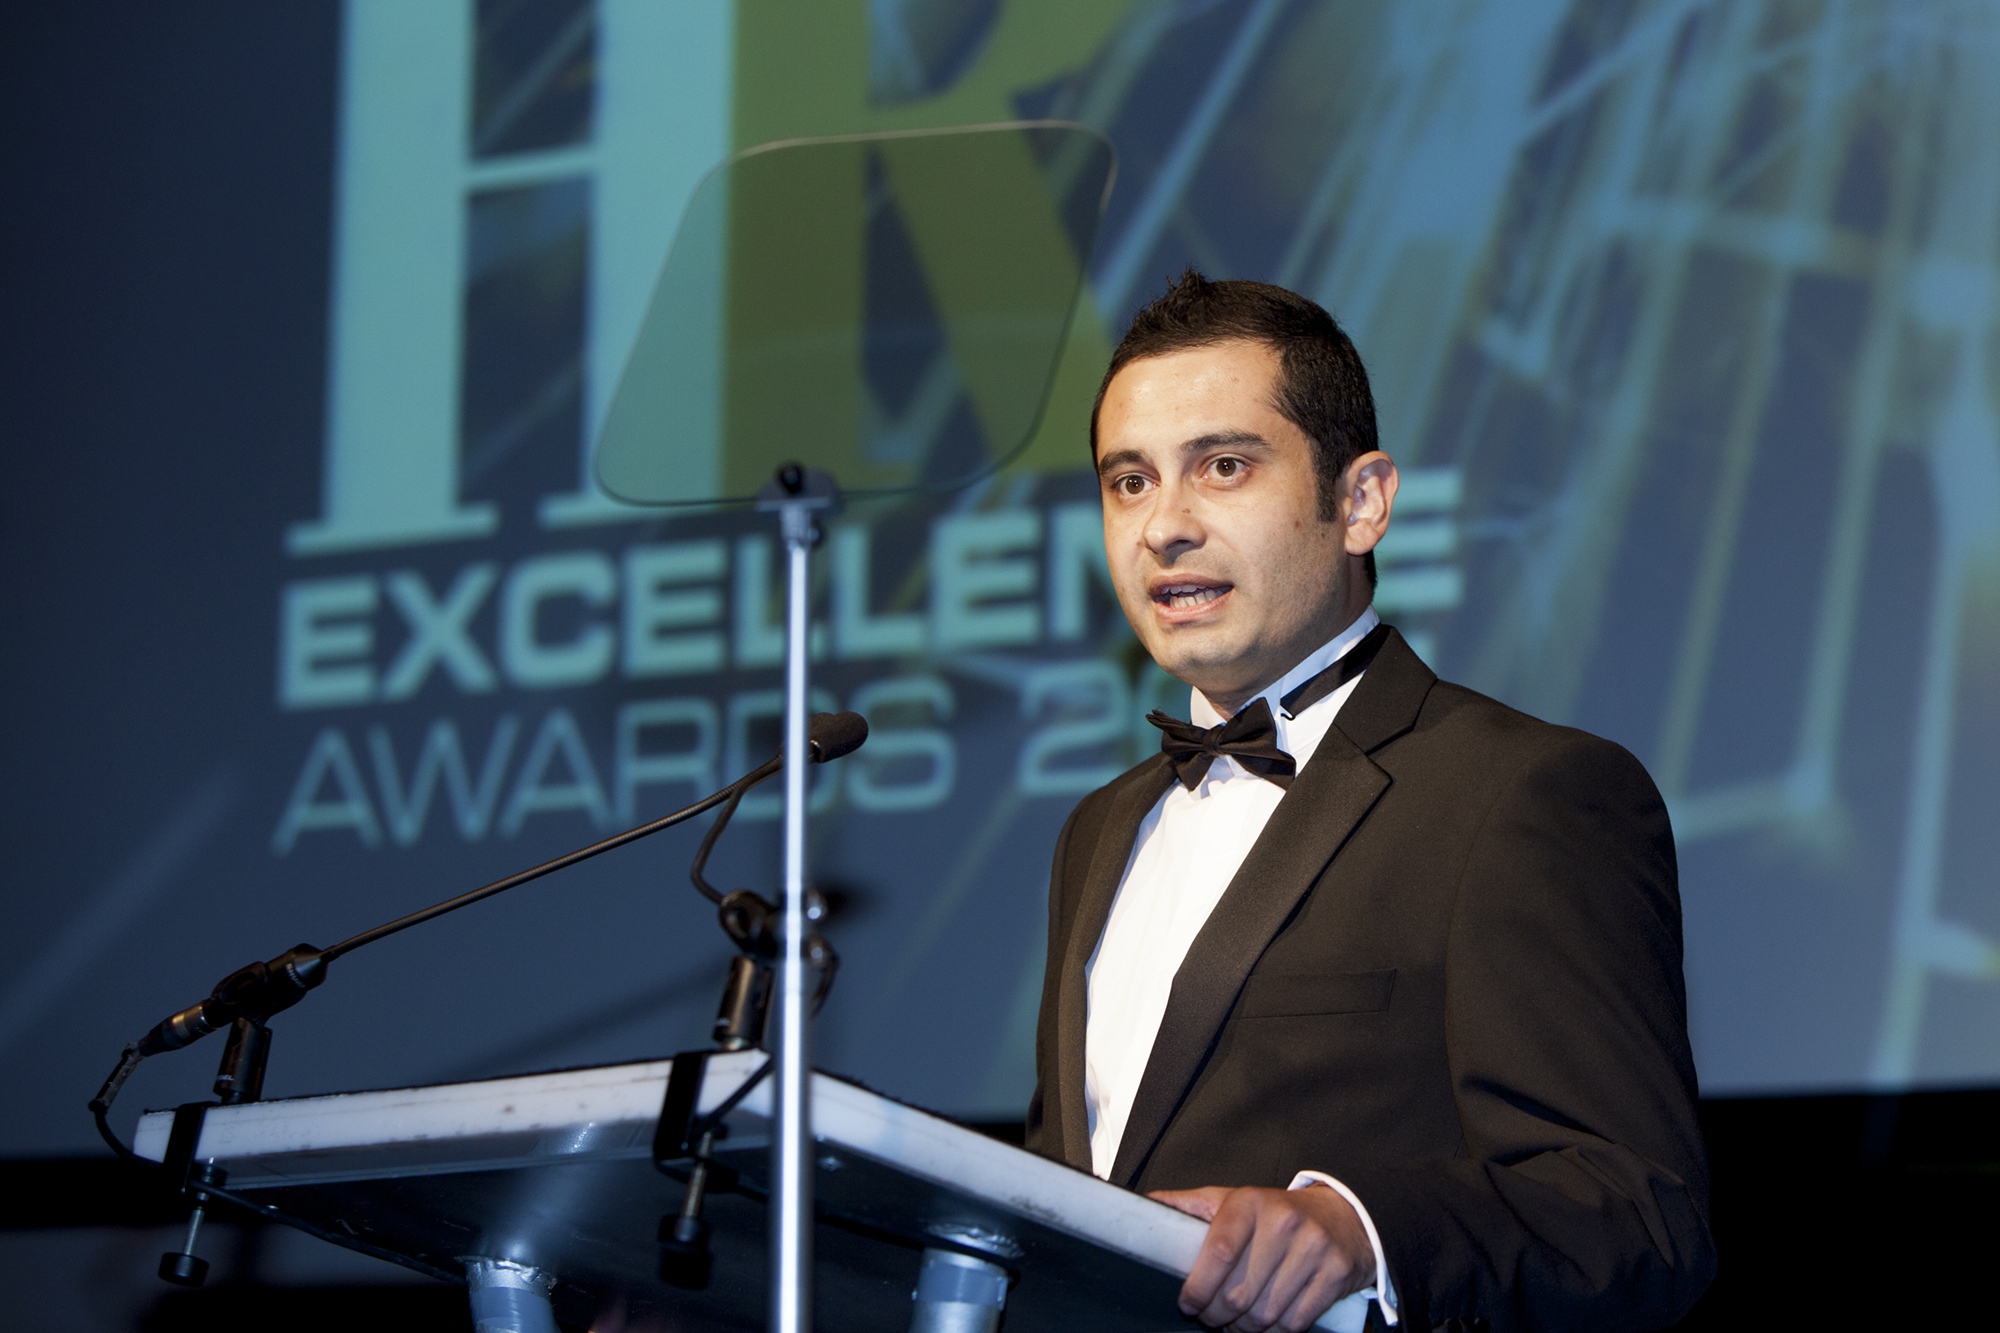 Black tie event at the R Awards 2012